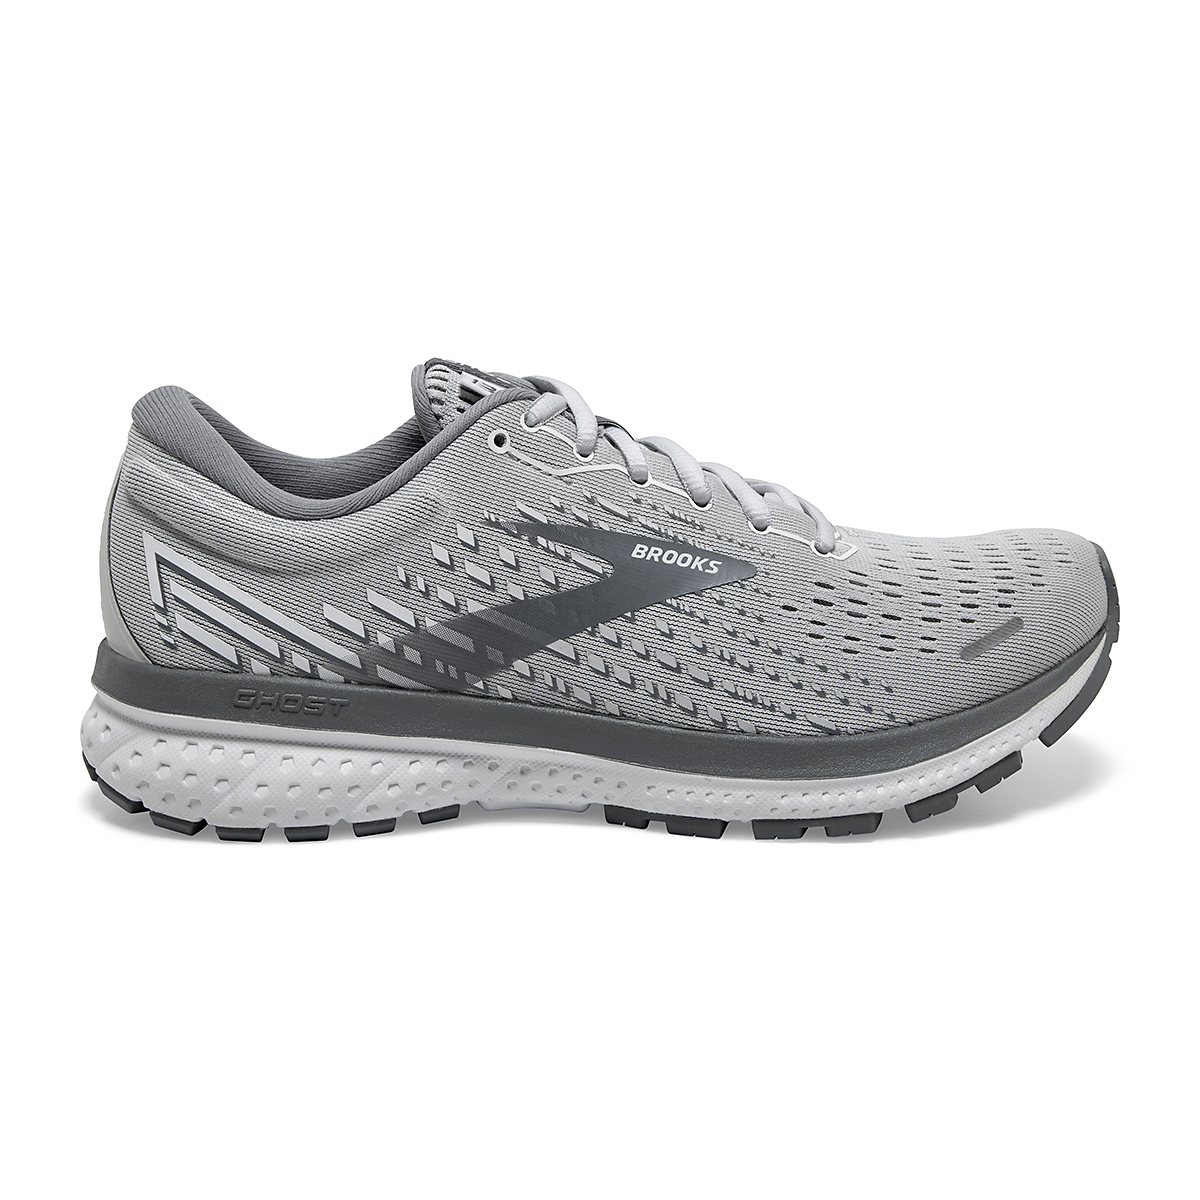 Women's Brooks Ghost 13 Running Shoe - Color: Alloy/Oyster/White - Size: 5 - Width: Regular, Alloy/Oyster/White, large, image 1